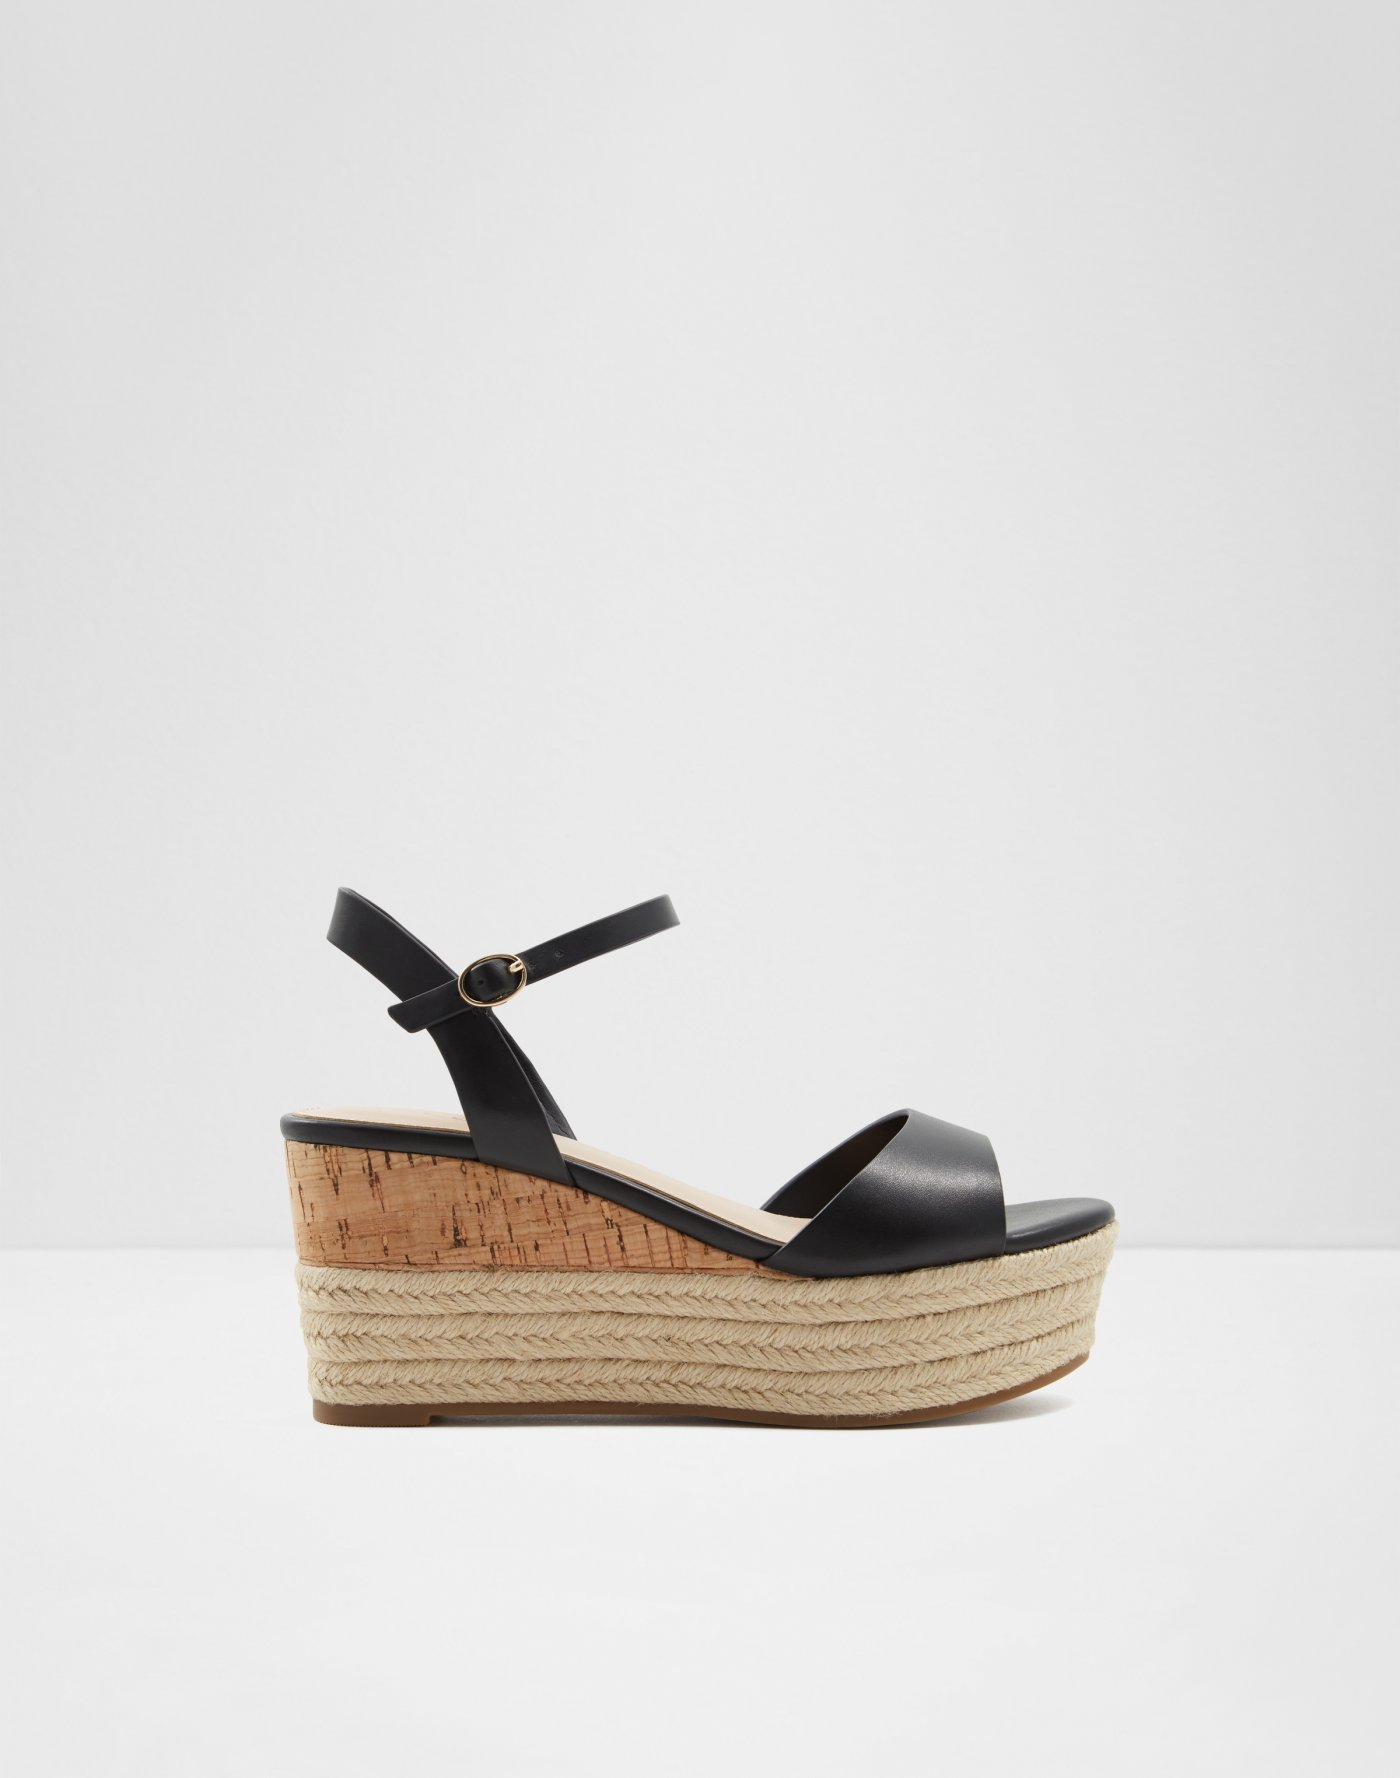 Sandals for Women | Slides & Gladiator Sandals | ALDO US | Aldoshoes.com US